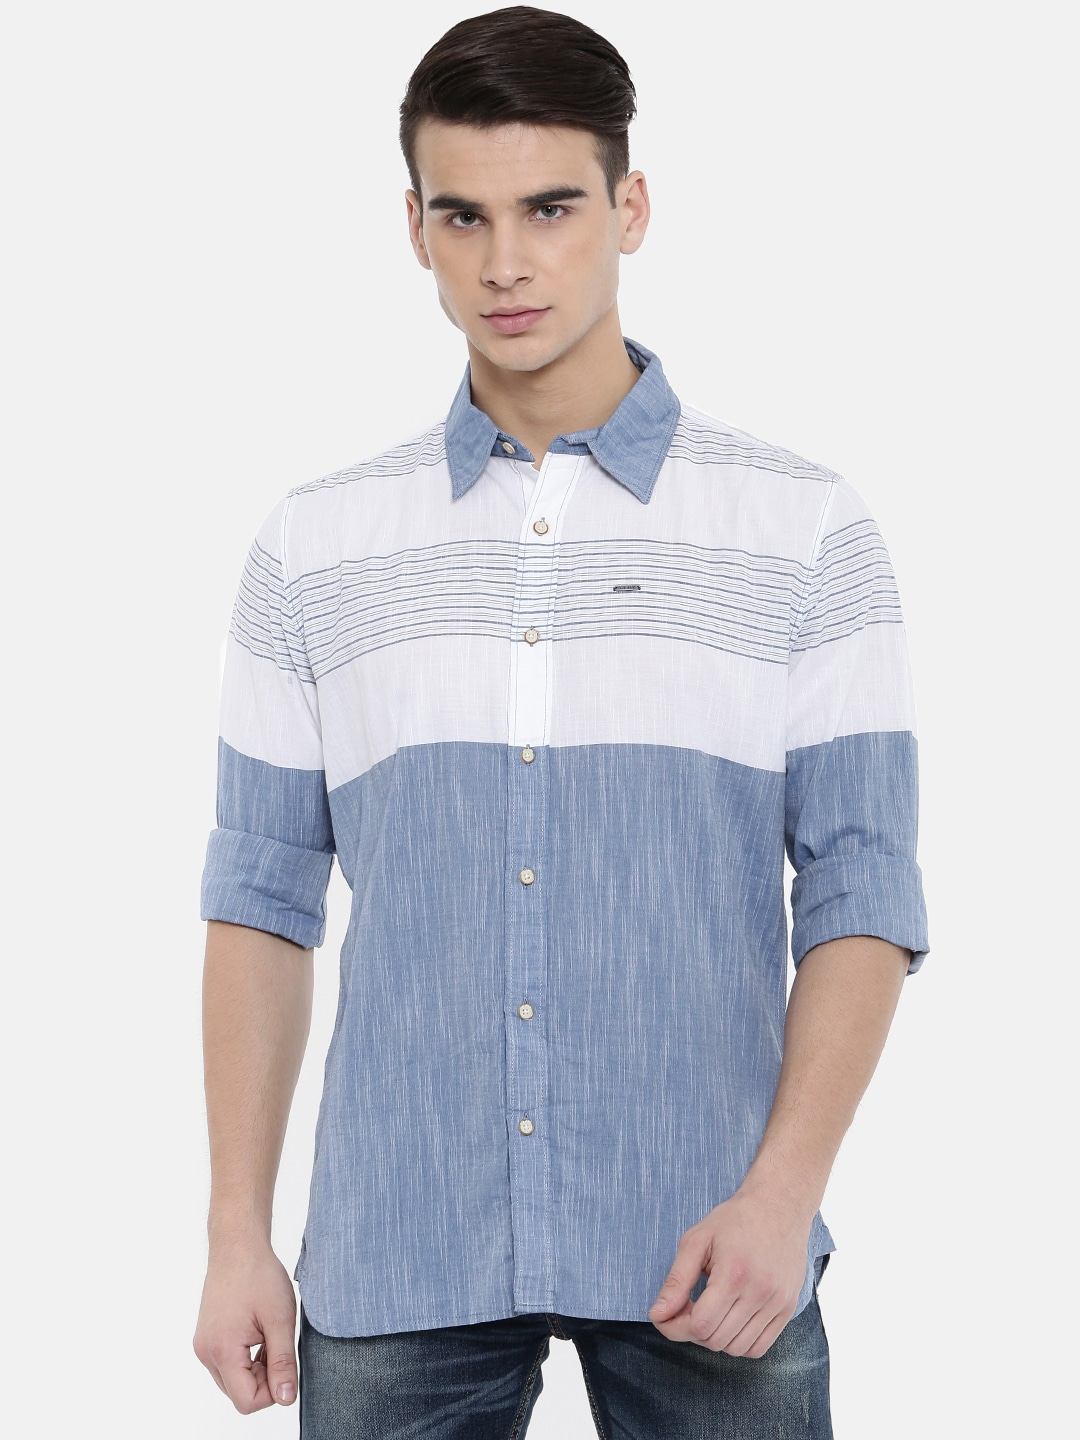 91e55d851318 Casual Shirts for Men - Buy Men Casual Shirt Online in India